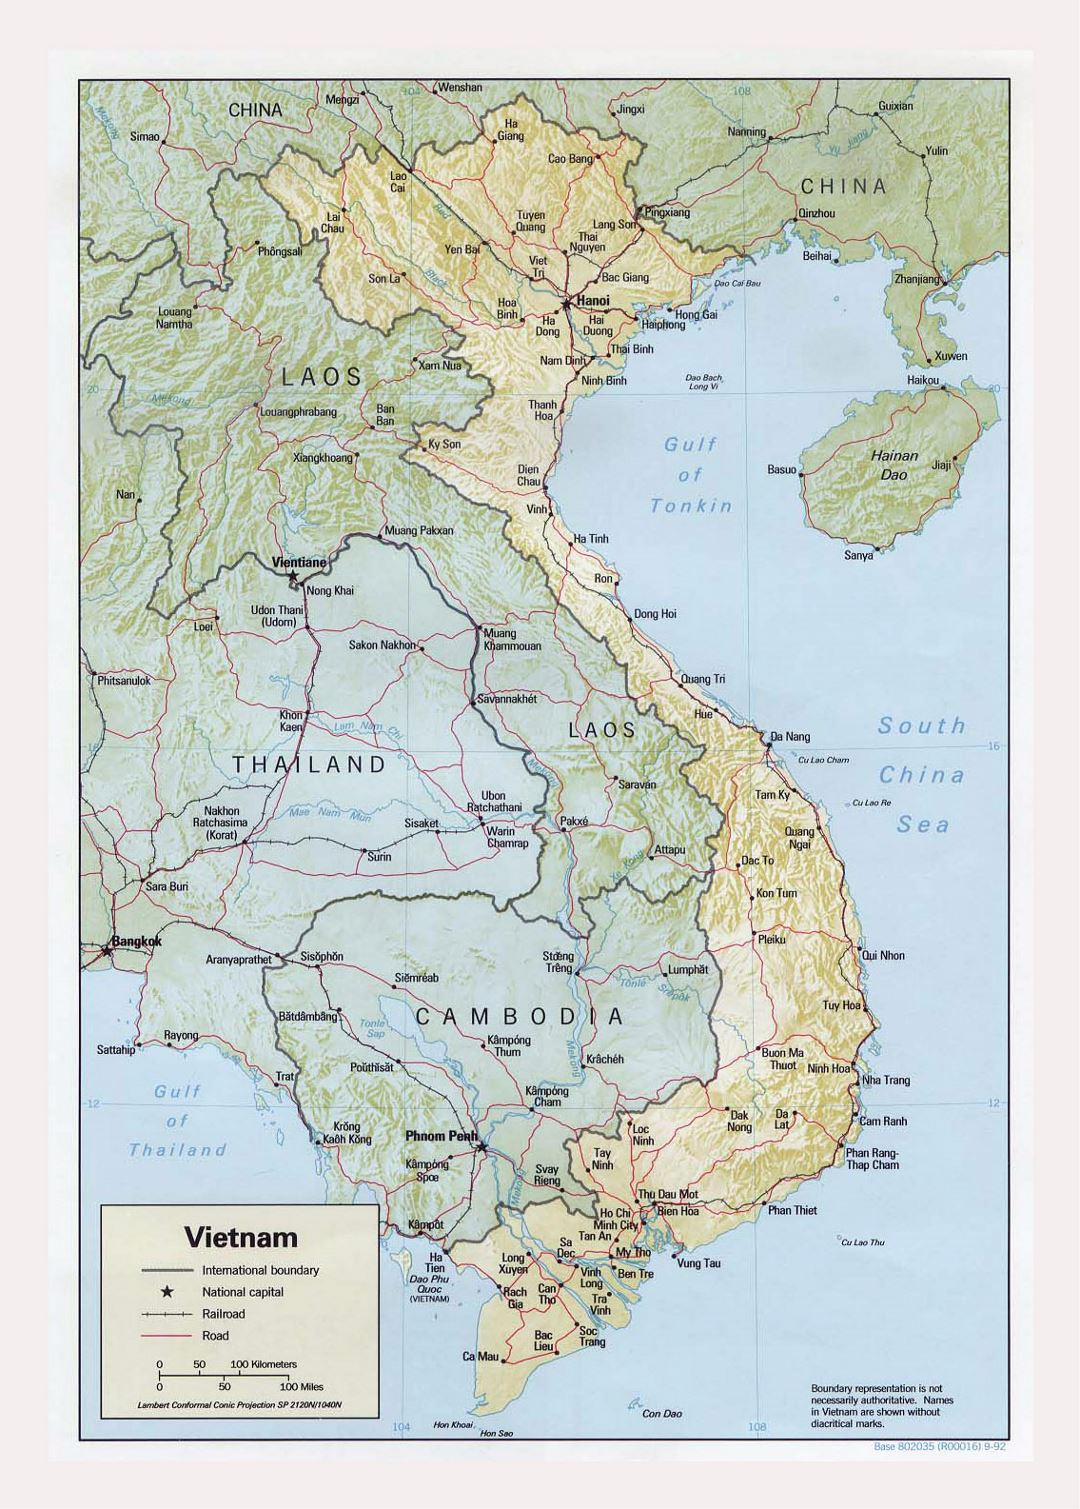 Detailed political map of Vietnam with relief, roads, railroads and major cities - 1992